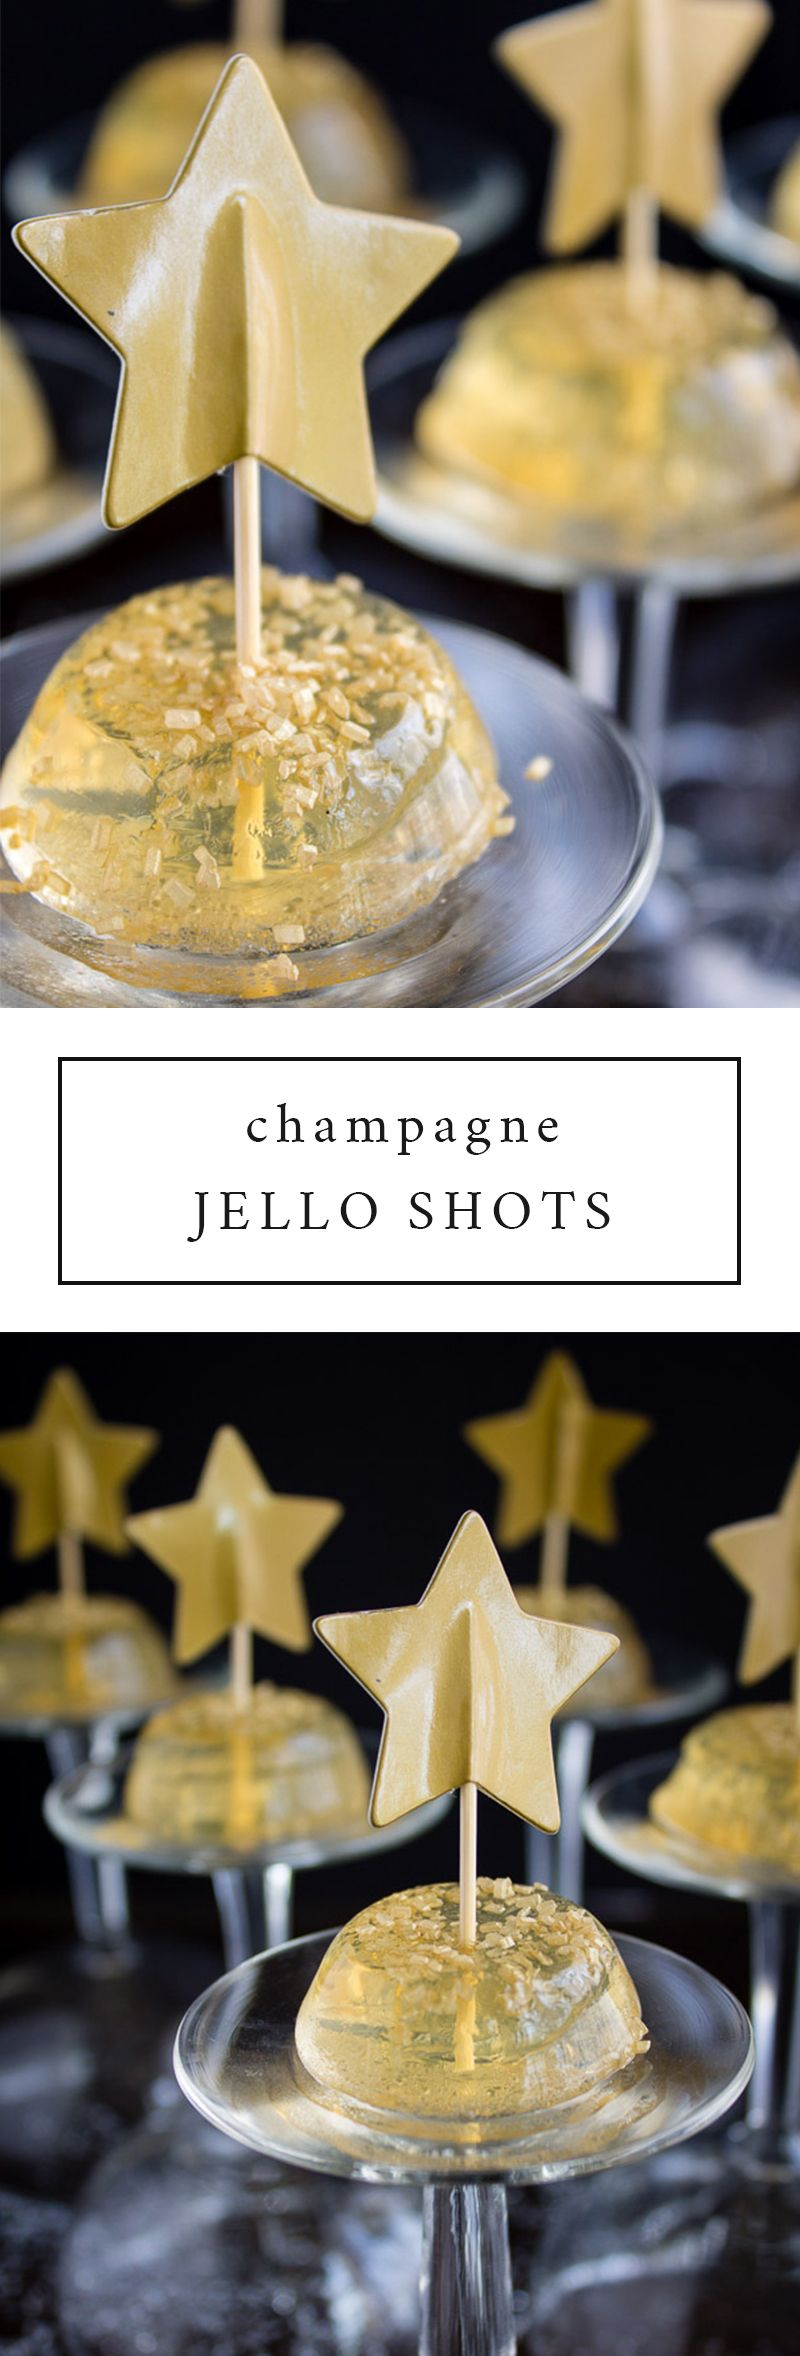 Champagne Jello Shots with Blueberries